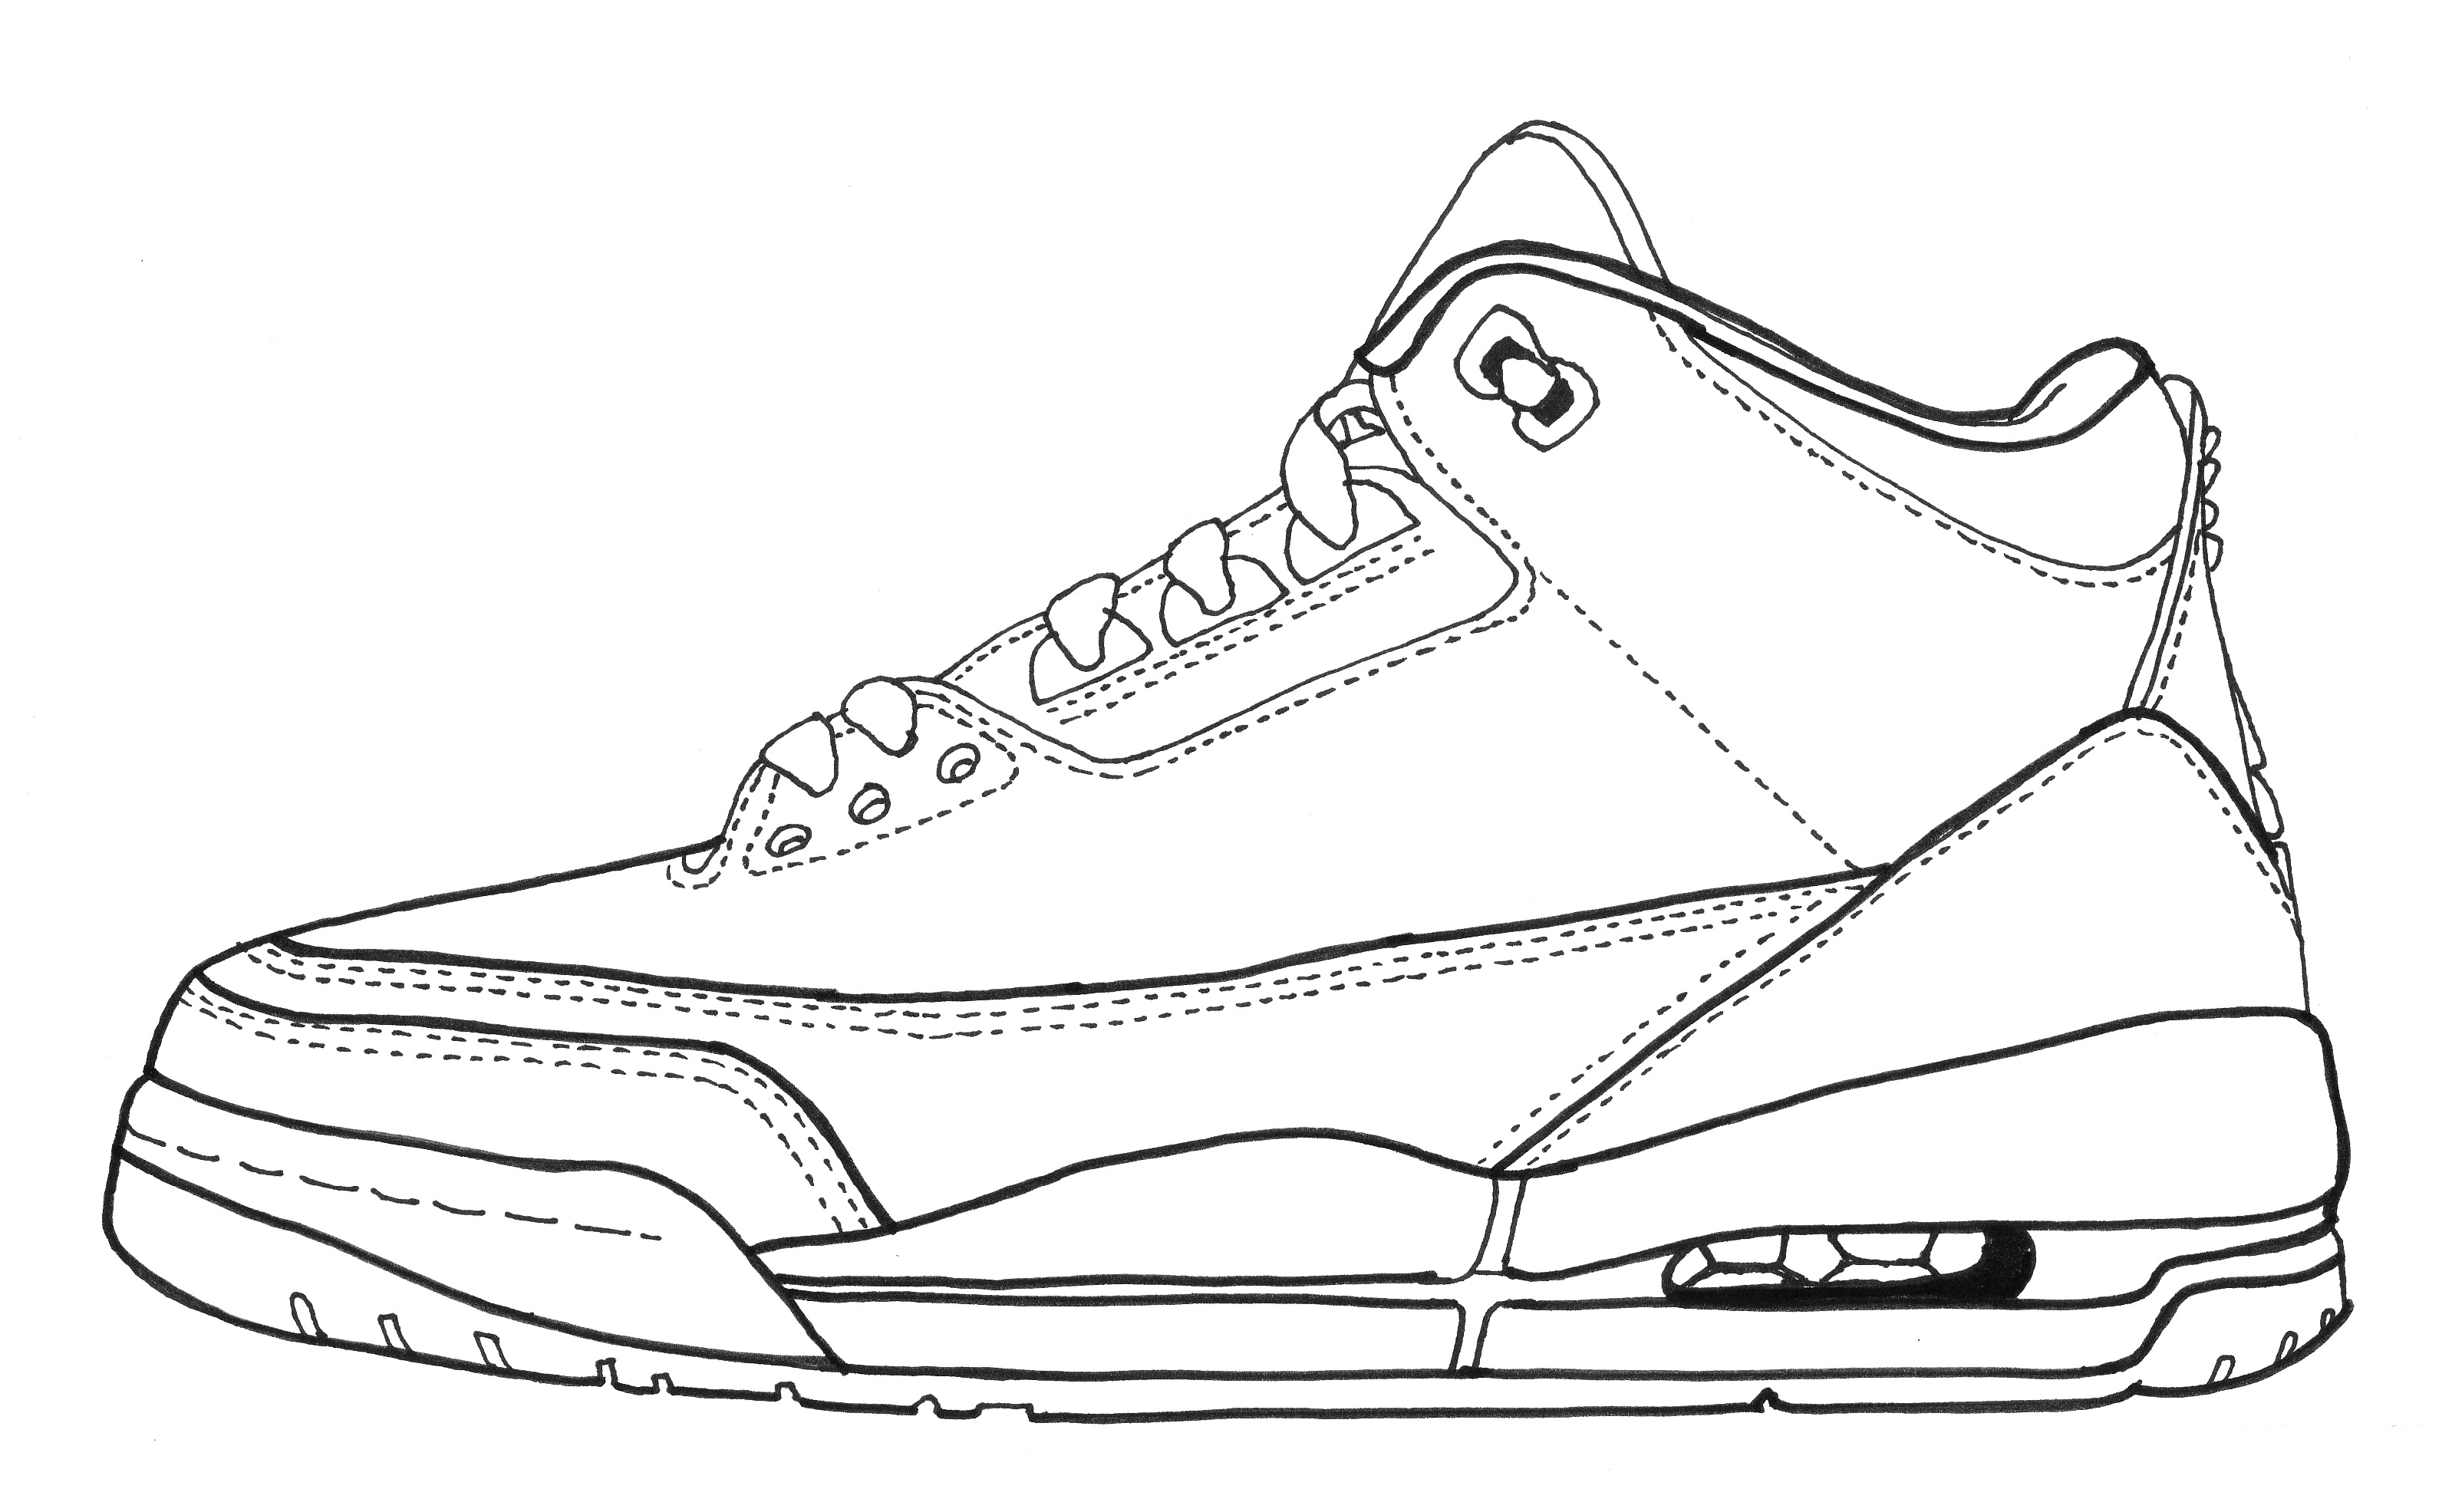 3196x1971 Drawings Of Air Jordan 3 Model Aviation